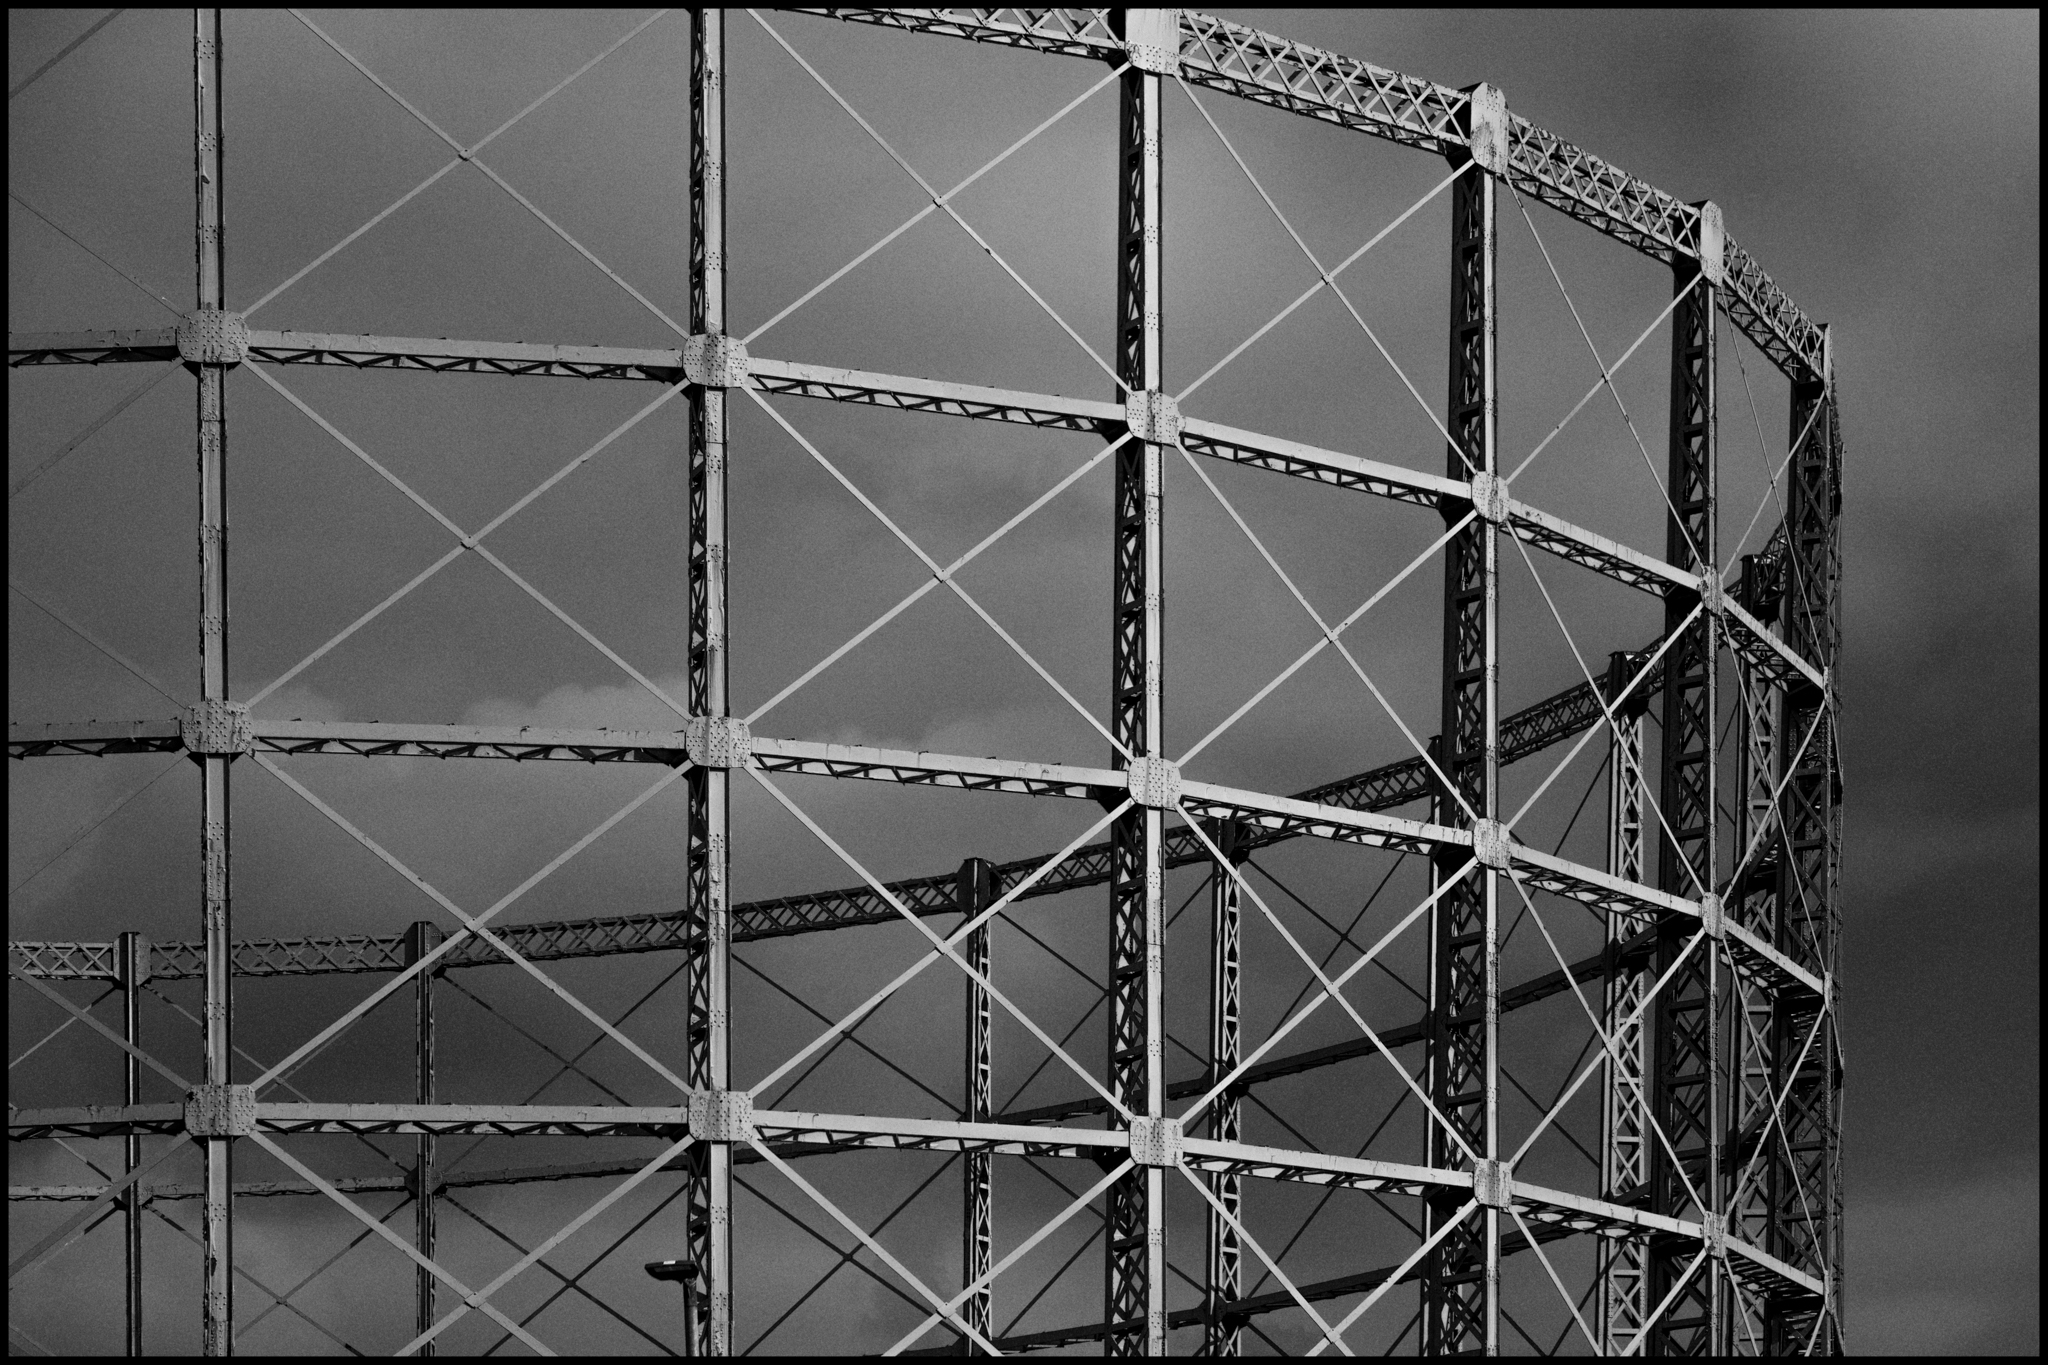 5 May 2019 - Gas holder construction, Manchester UK